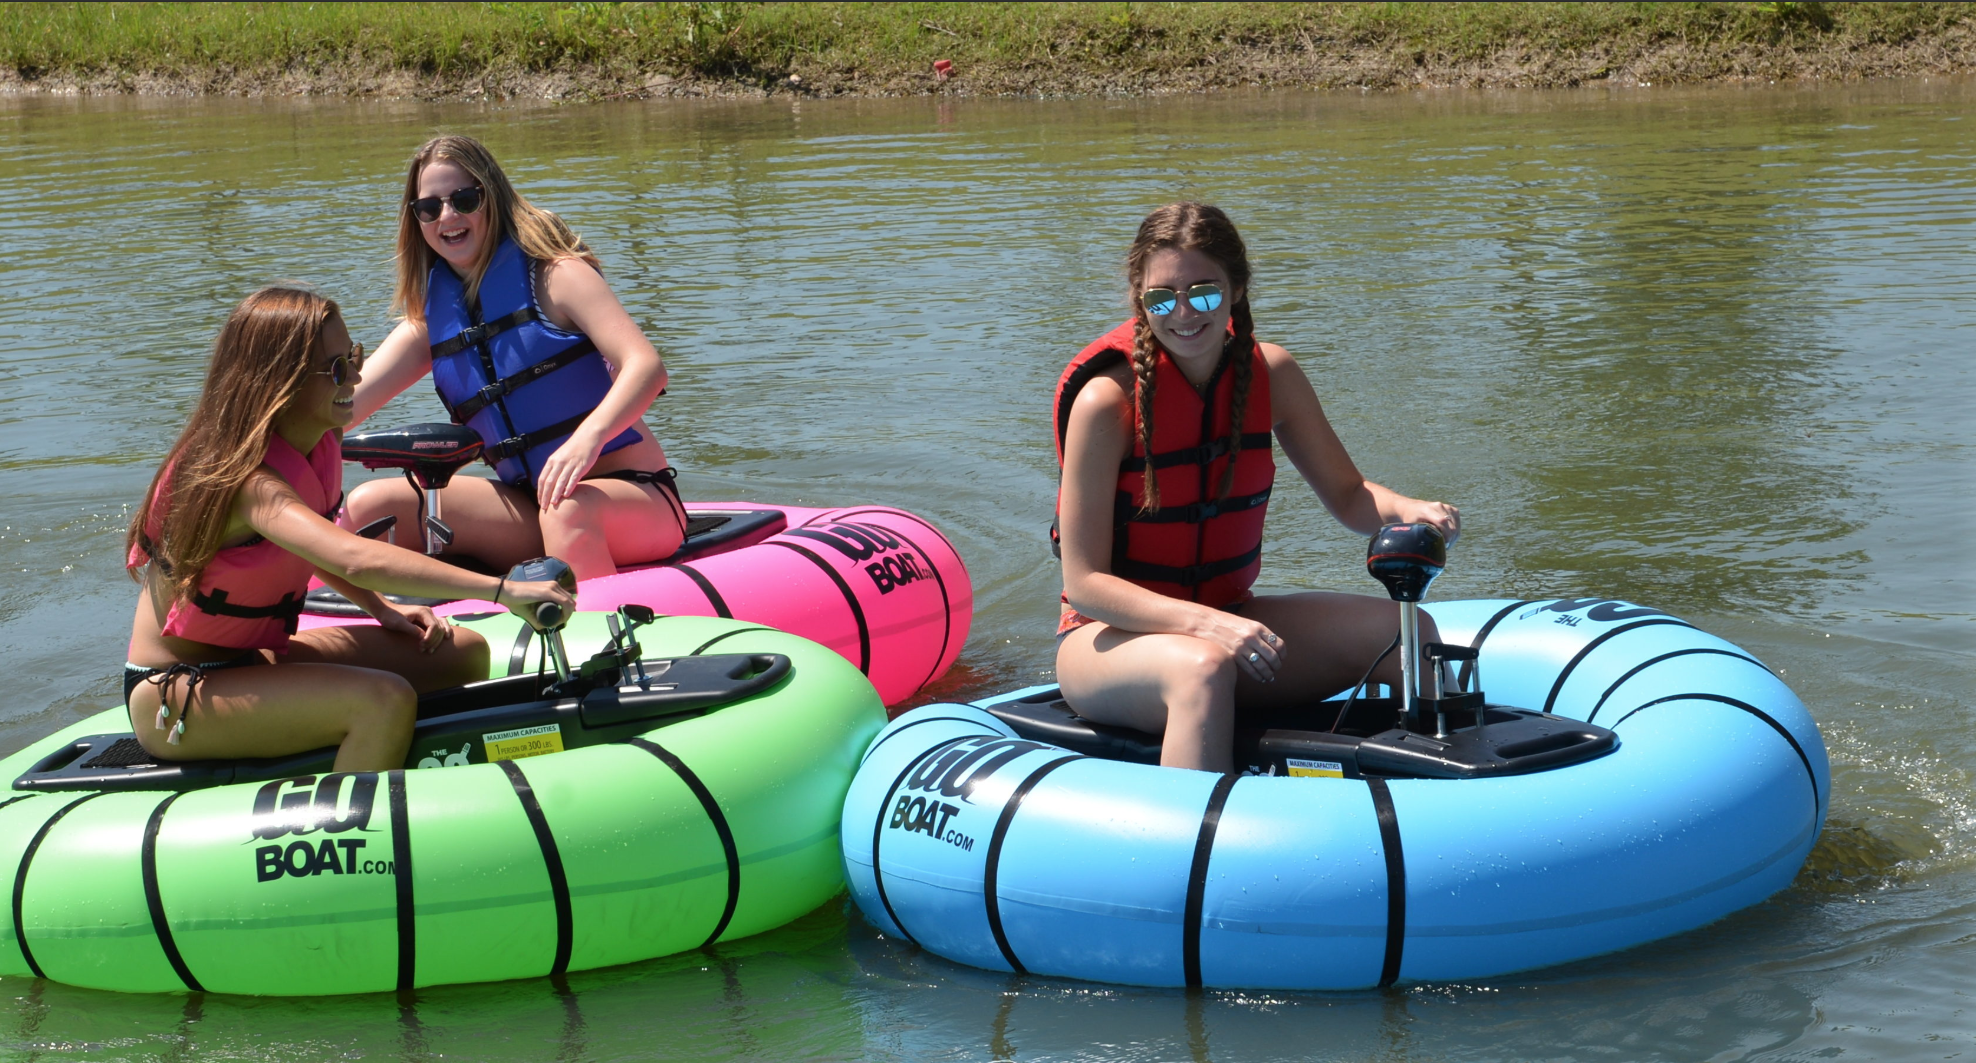 This Motorized Float Allows You to Play Bumper Cars in Basically Any Body of Water